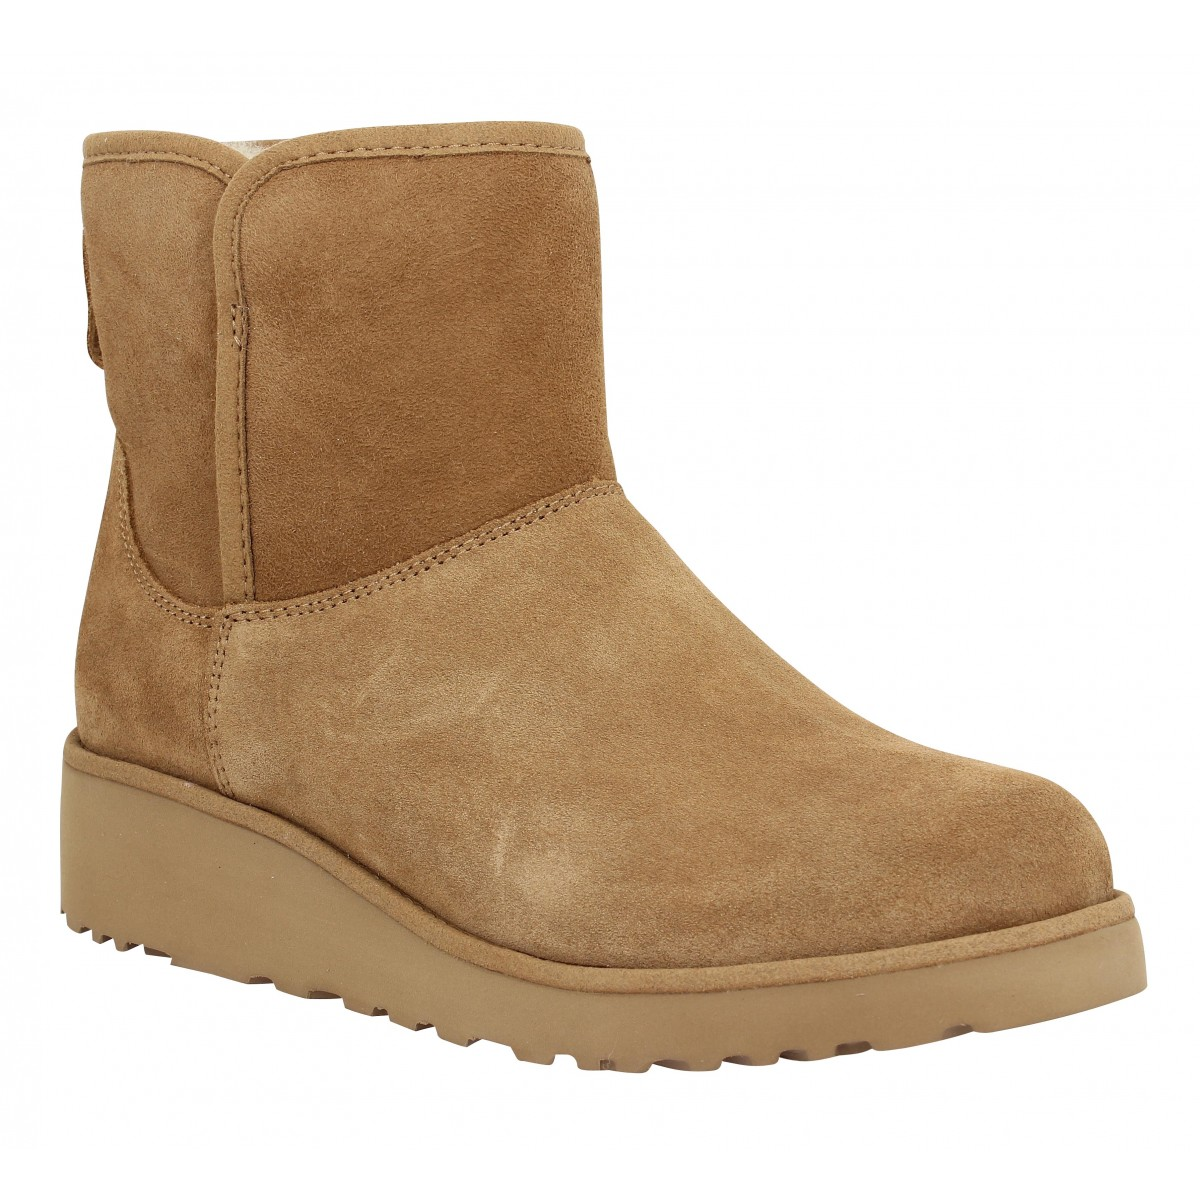 Bottines UGG AUSTRALIA Kristin velours Chestnut